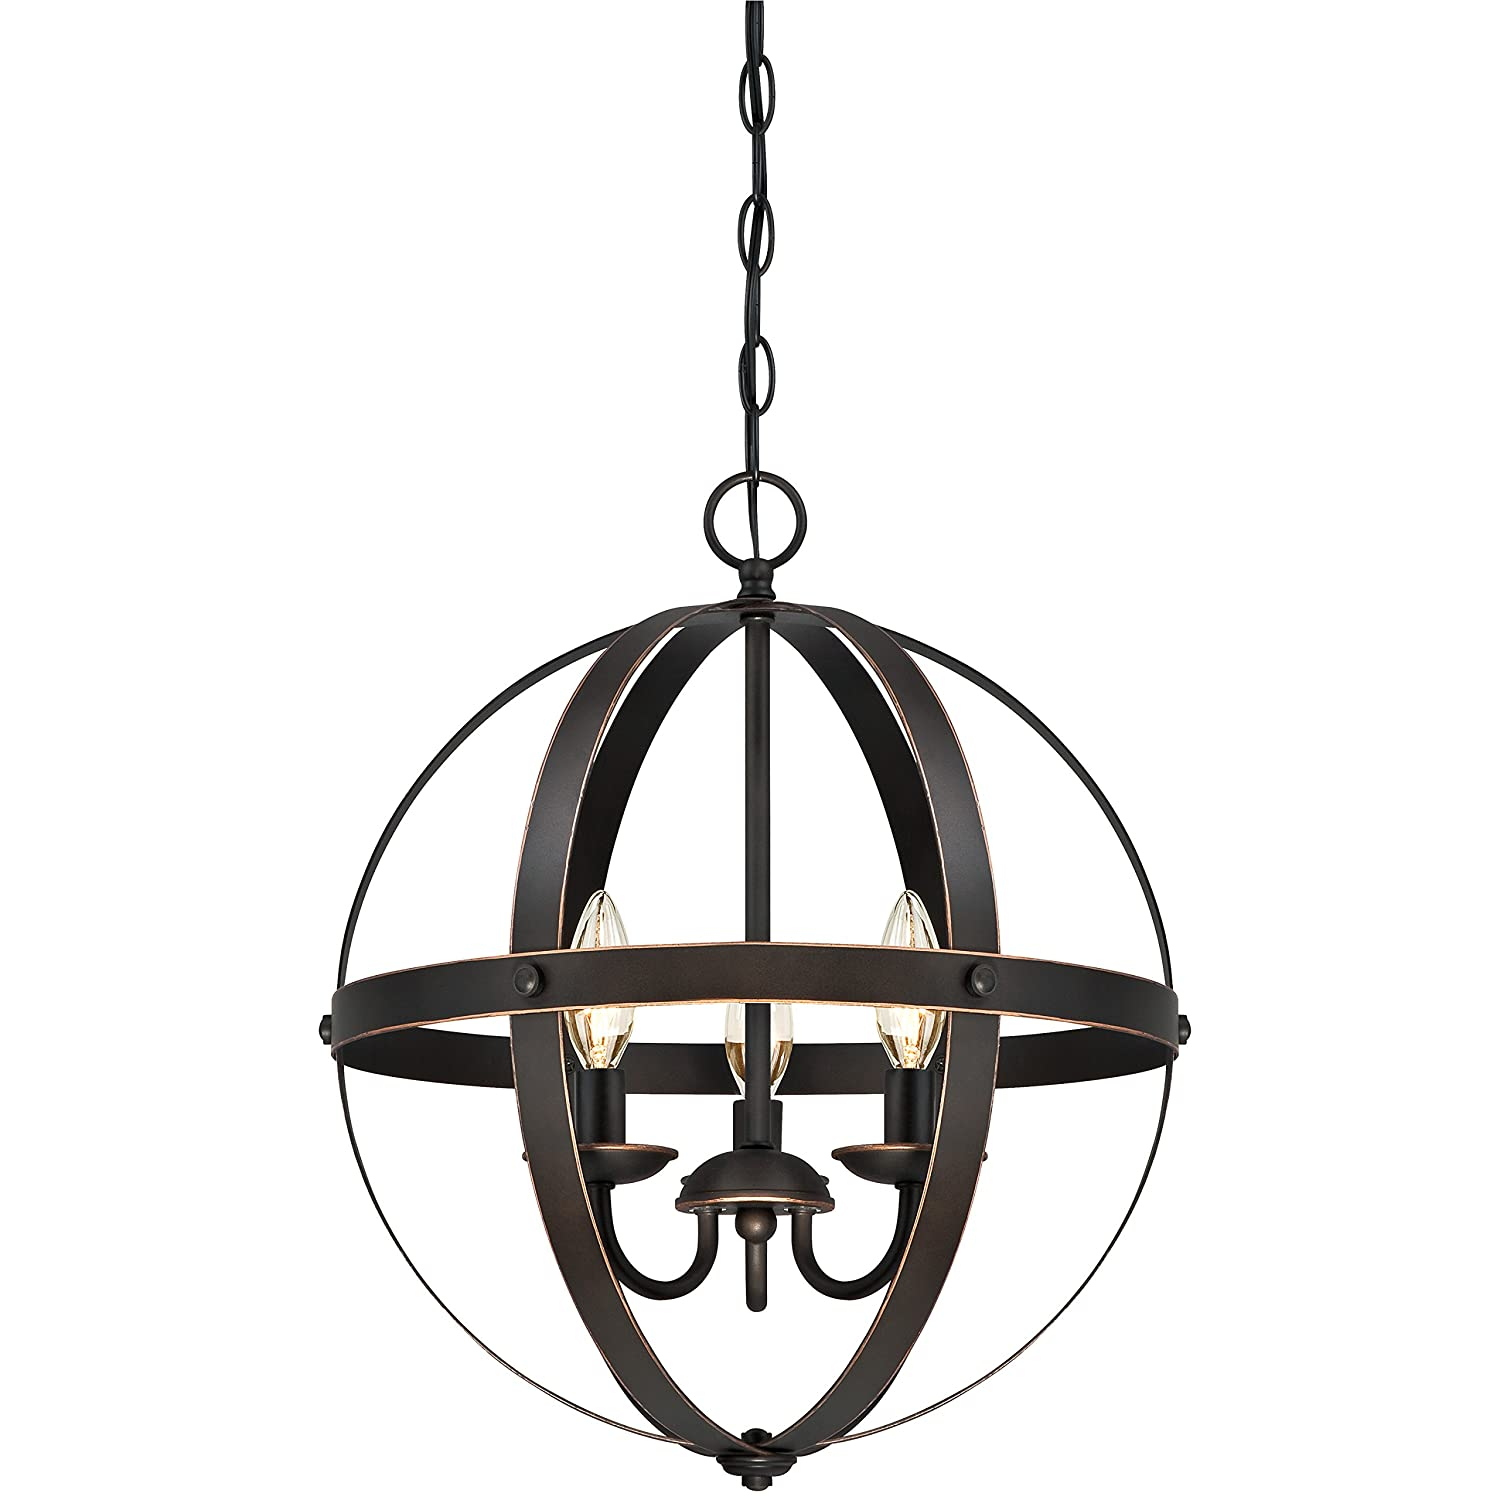 Pendant Light Fixtures Amazoncom Lighting Ceiling Fans - 66 most creative and original pendant lamps ever